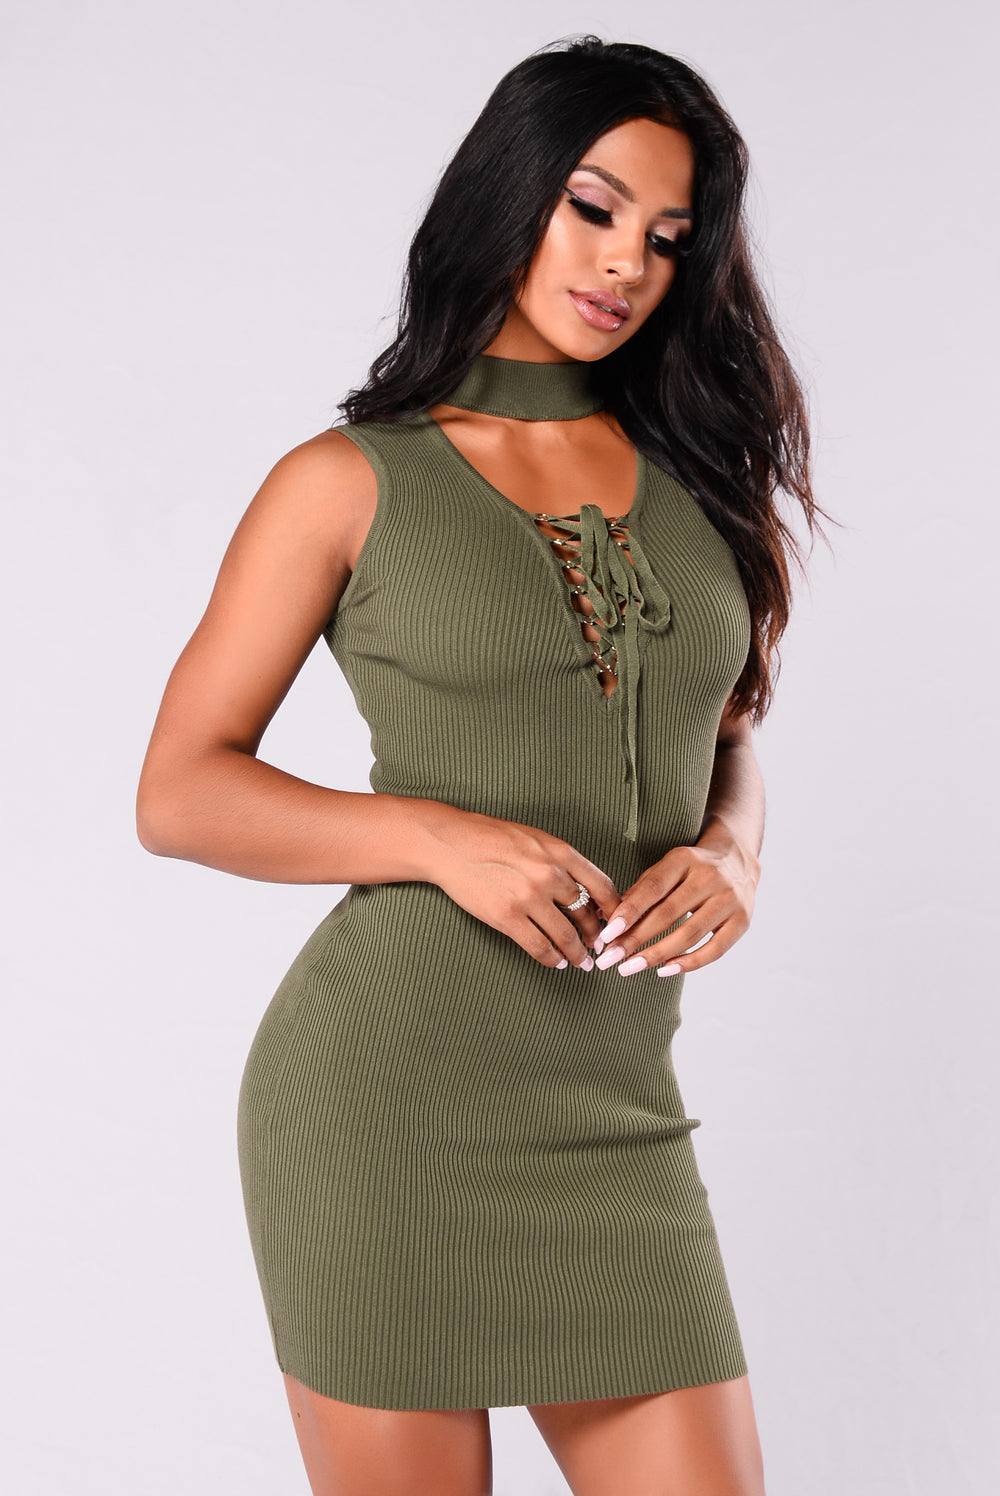 Riled Up Lace Up Dress - Hunter